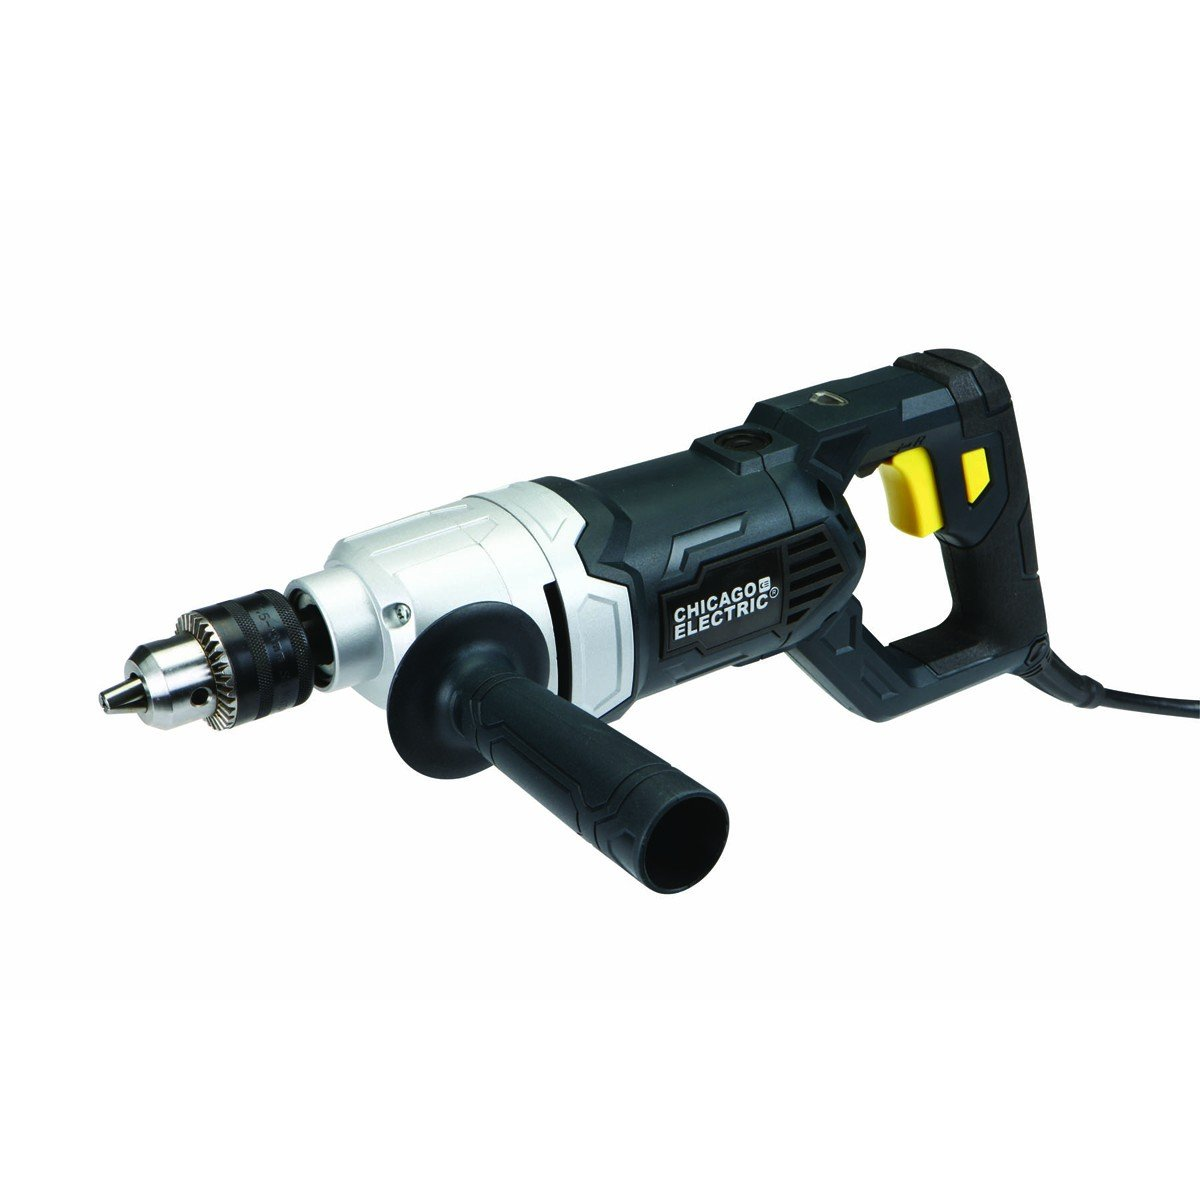 1/2 in. Heavy Duty D-Handle Variable Speed Reversible Drill